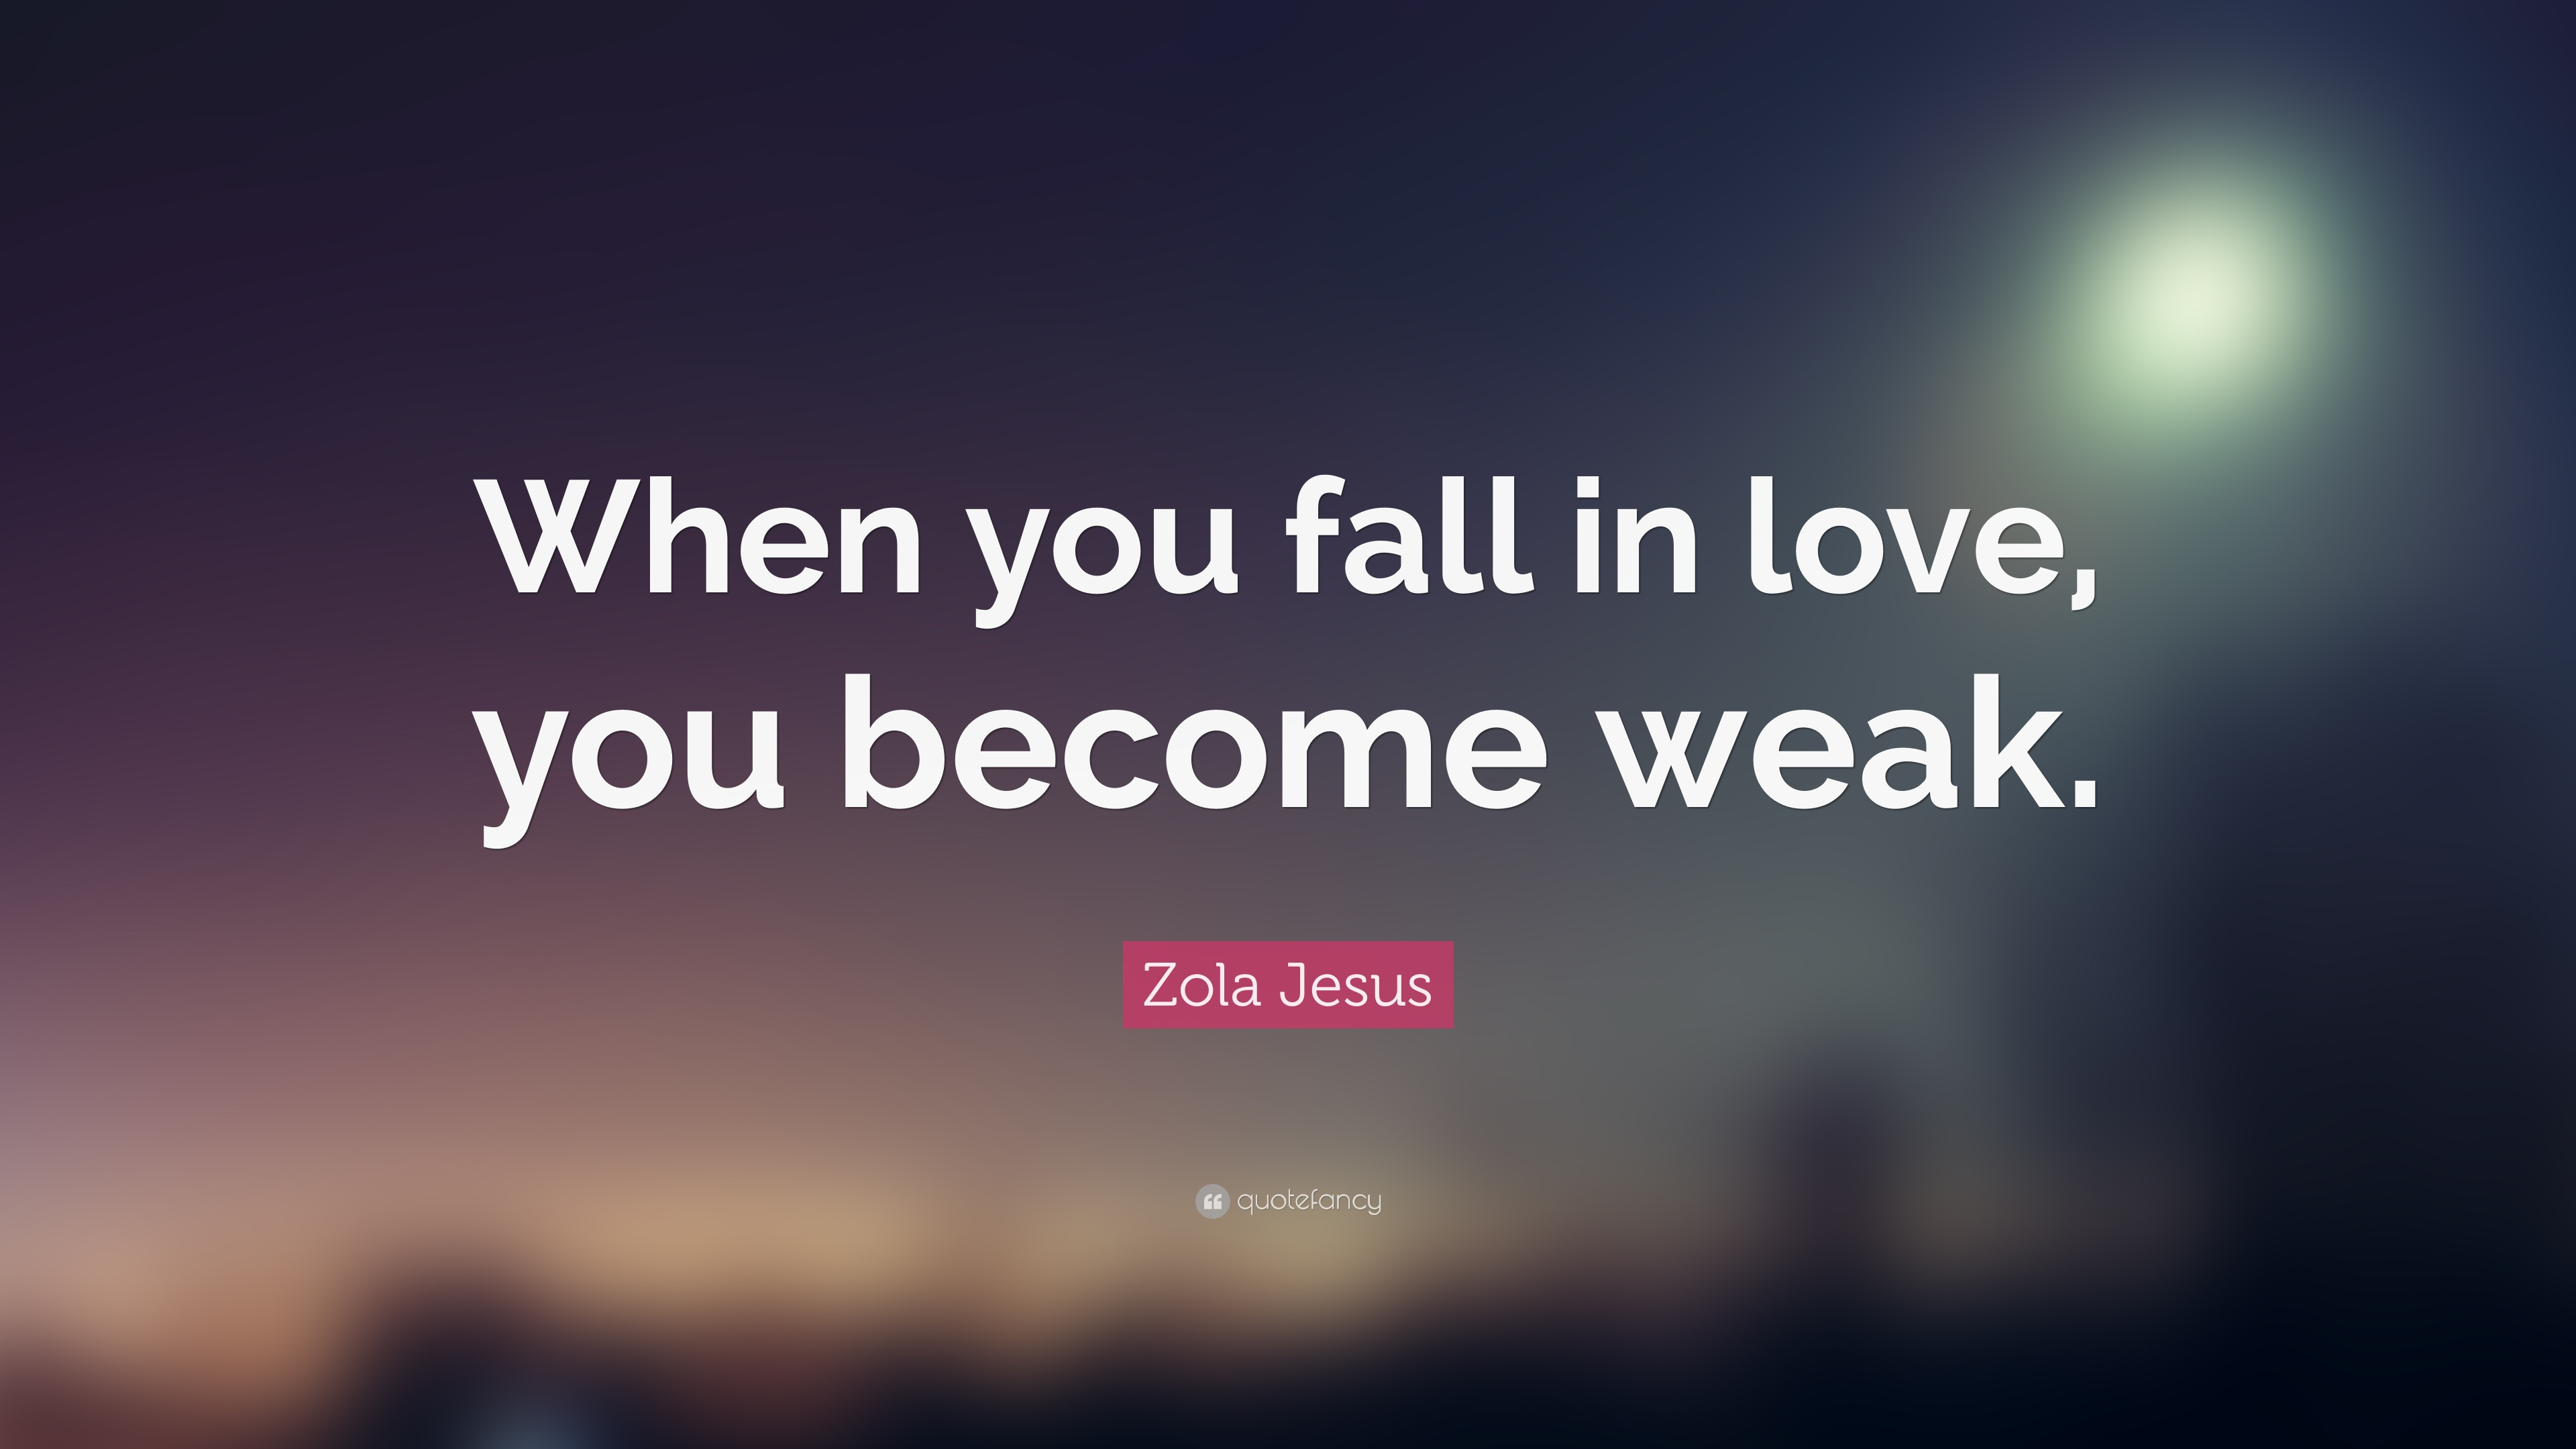 Zola Jesus Quotes 20 Wallpapers Quotefancy